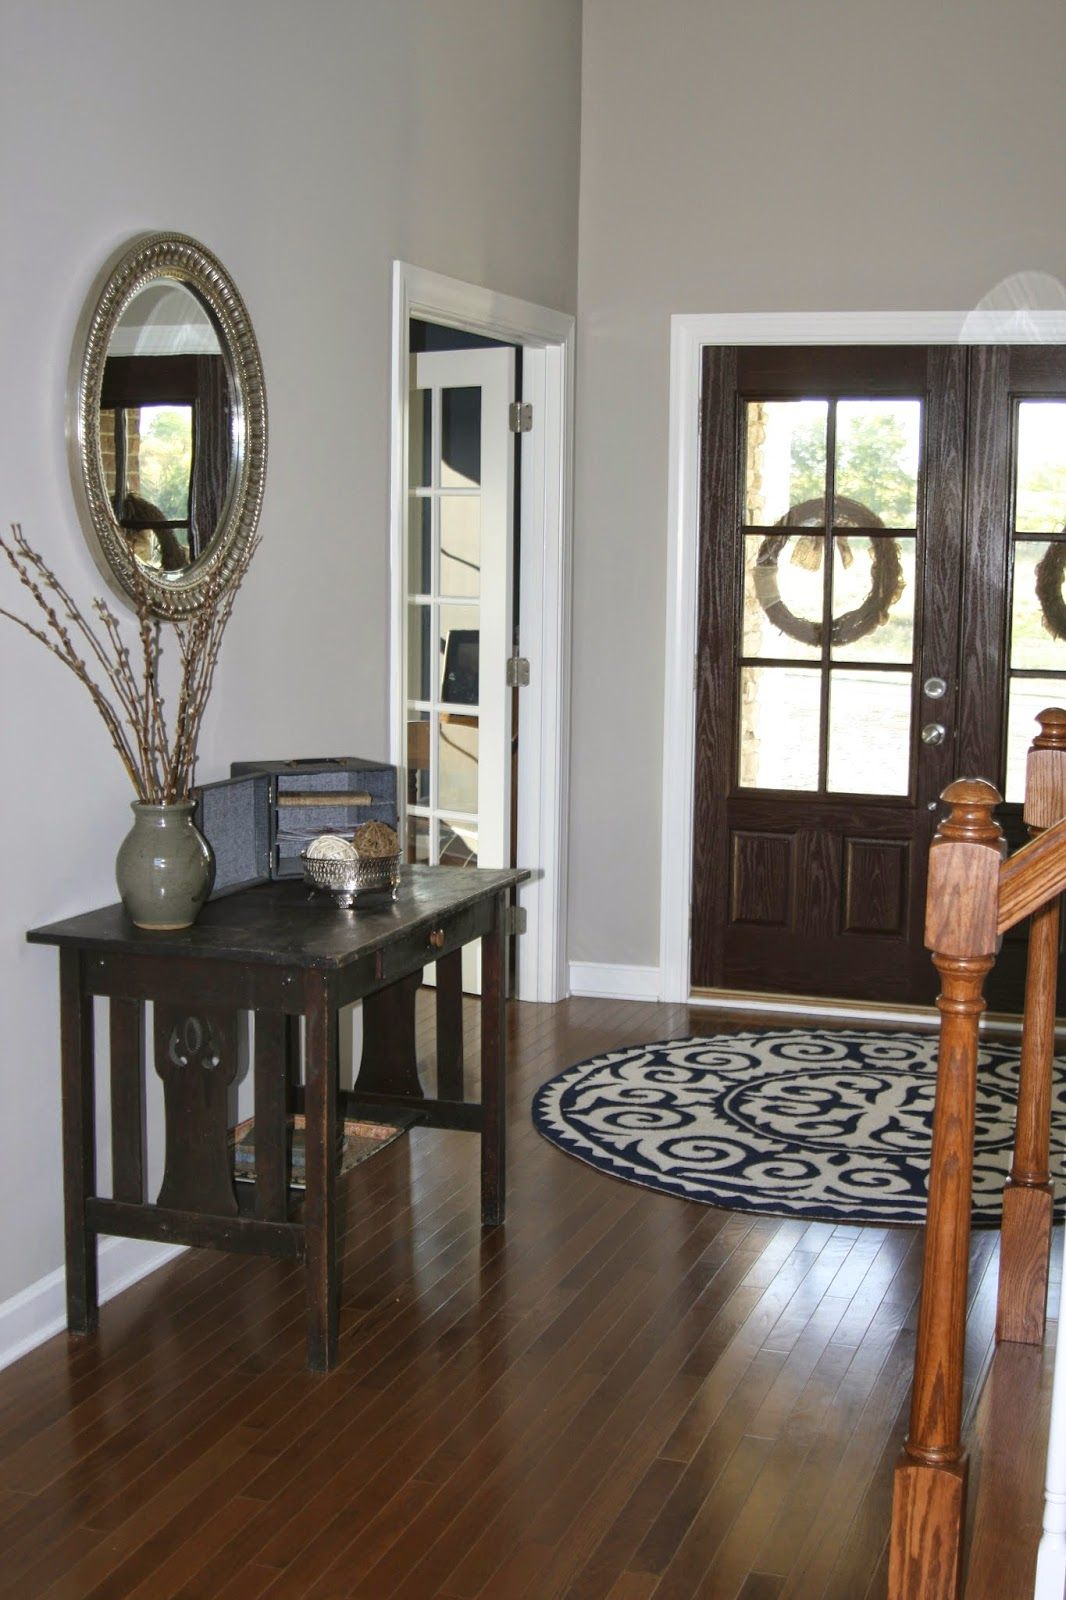 Entryway paint revere pewter benjamin moore i like the - Benjamin moore interior paint colors ...